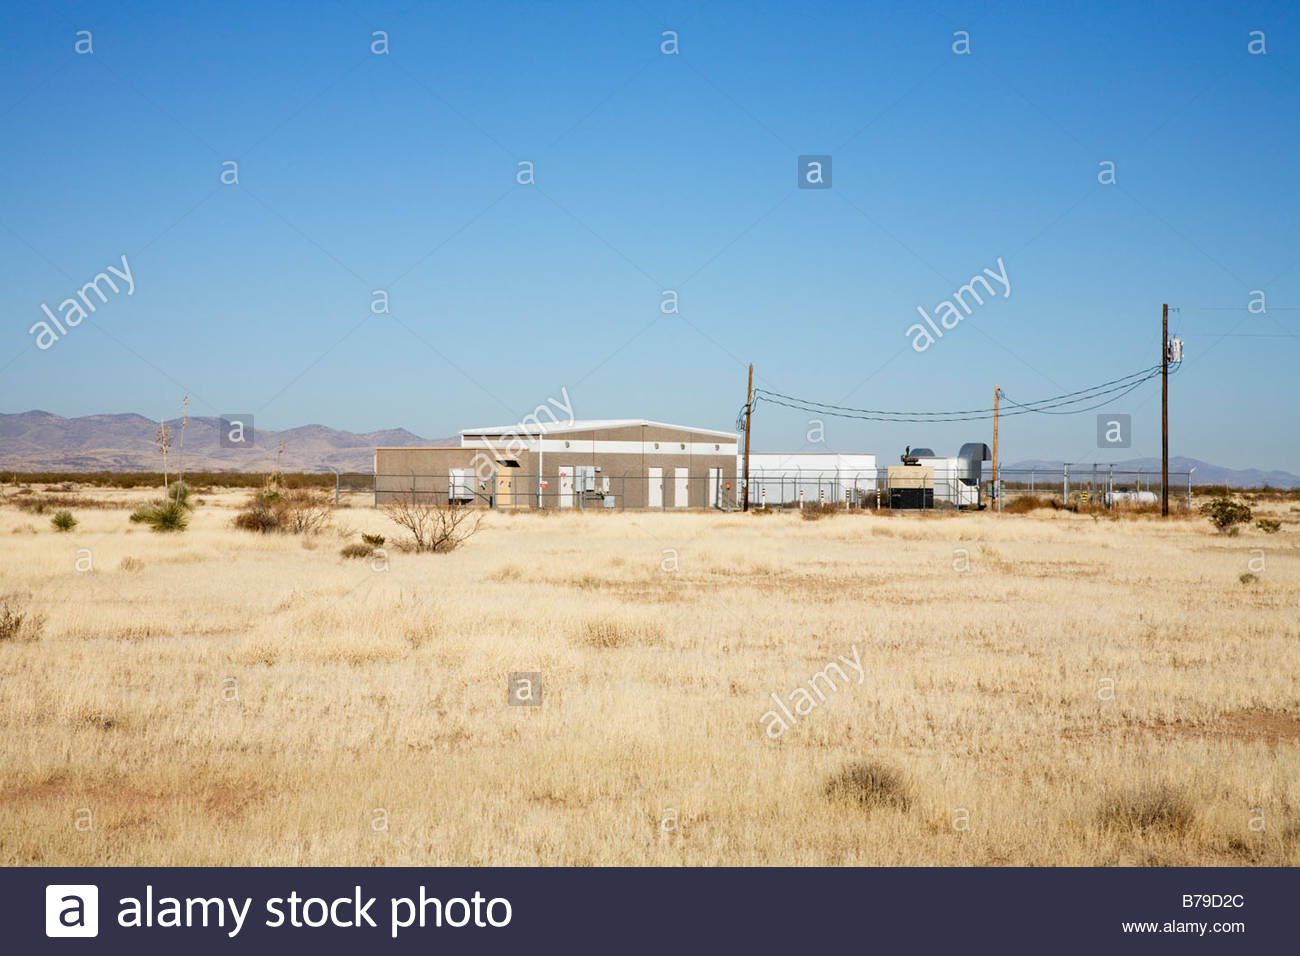 Fiber optic repeater booster station in southwestern 'New Mexico' - Stock Image